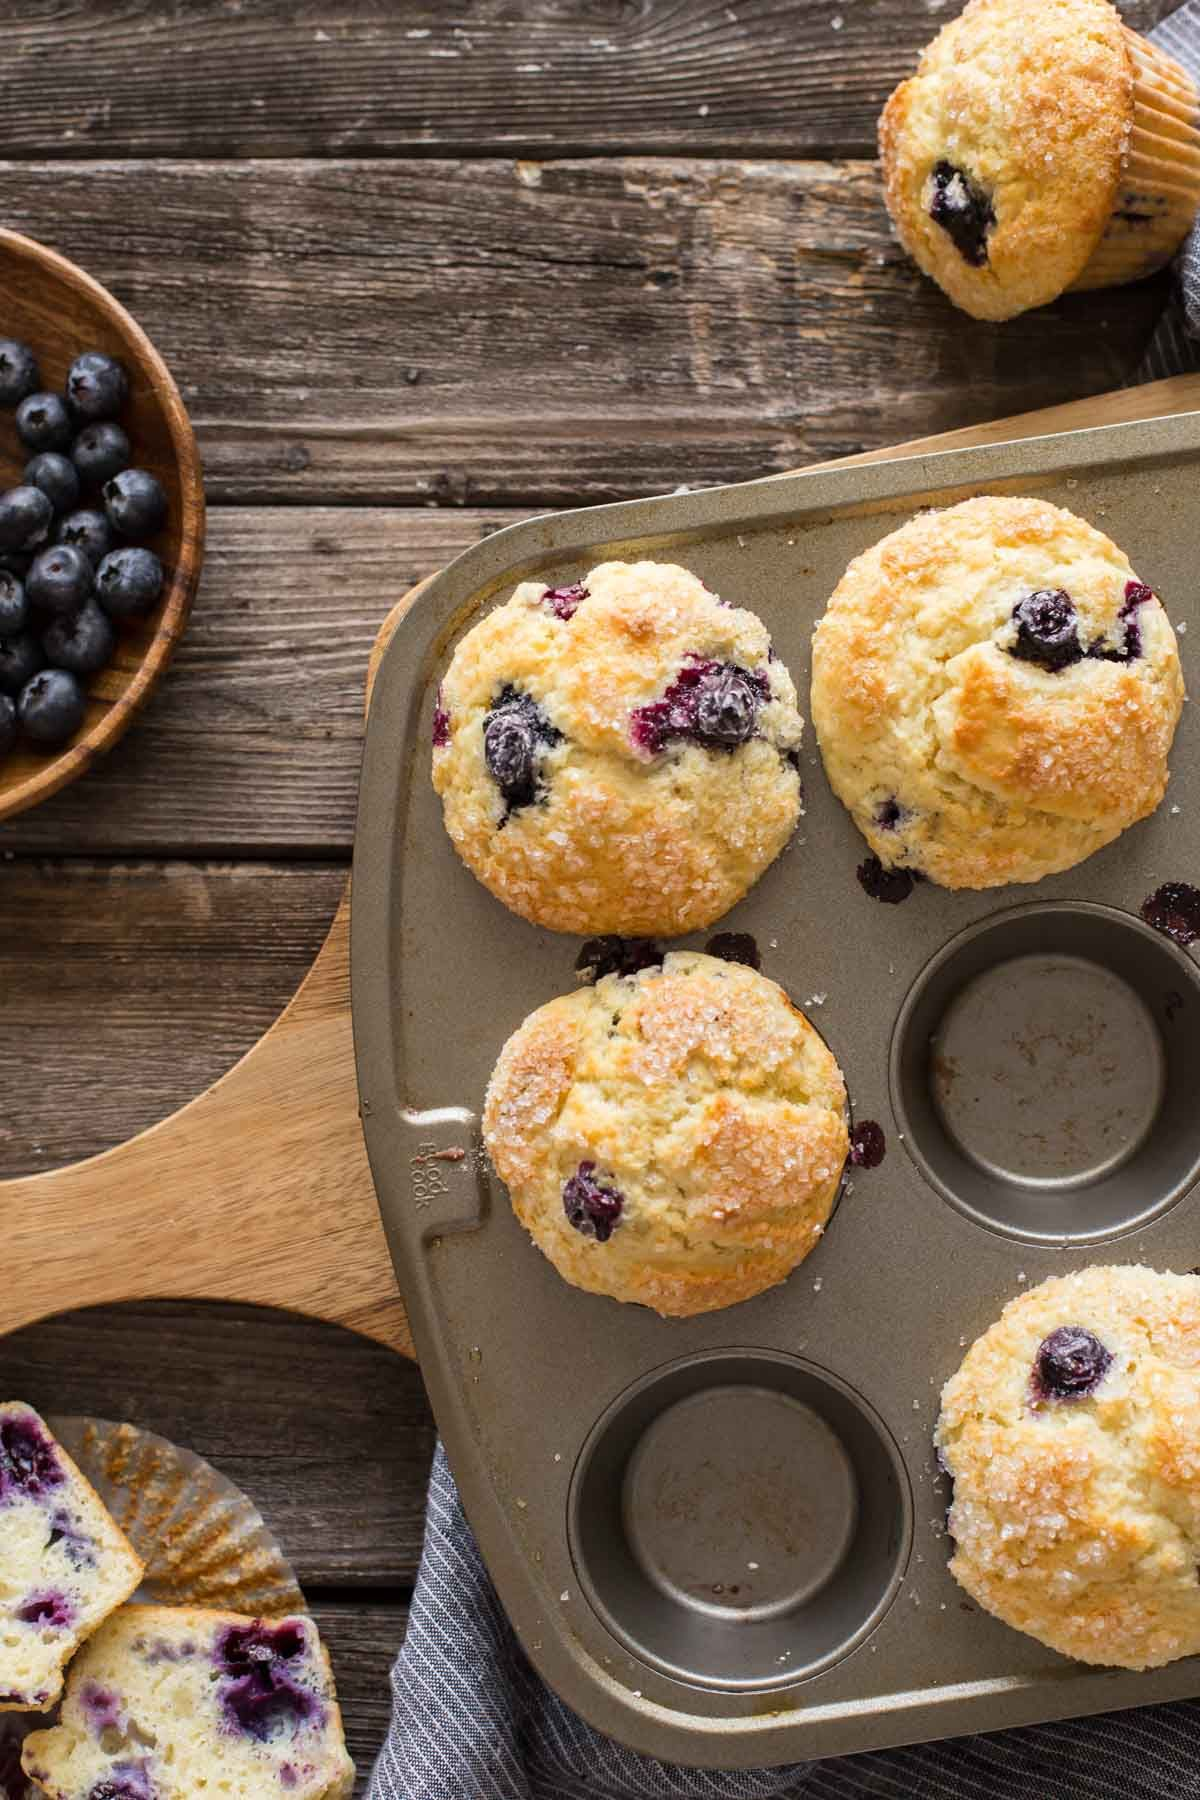 Best Ever Buttermilk Blueberry Muffins In A Muffin Pan On A Wooden Backboard With A Bowl Blue Berry Muffins Buttermilk Blueberry Muffins Best Blueberry Muffins